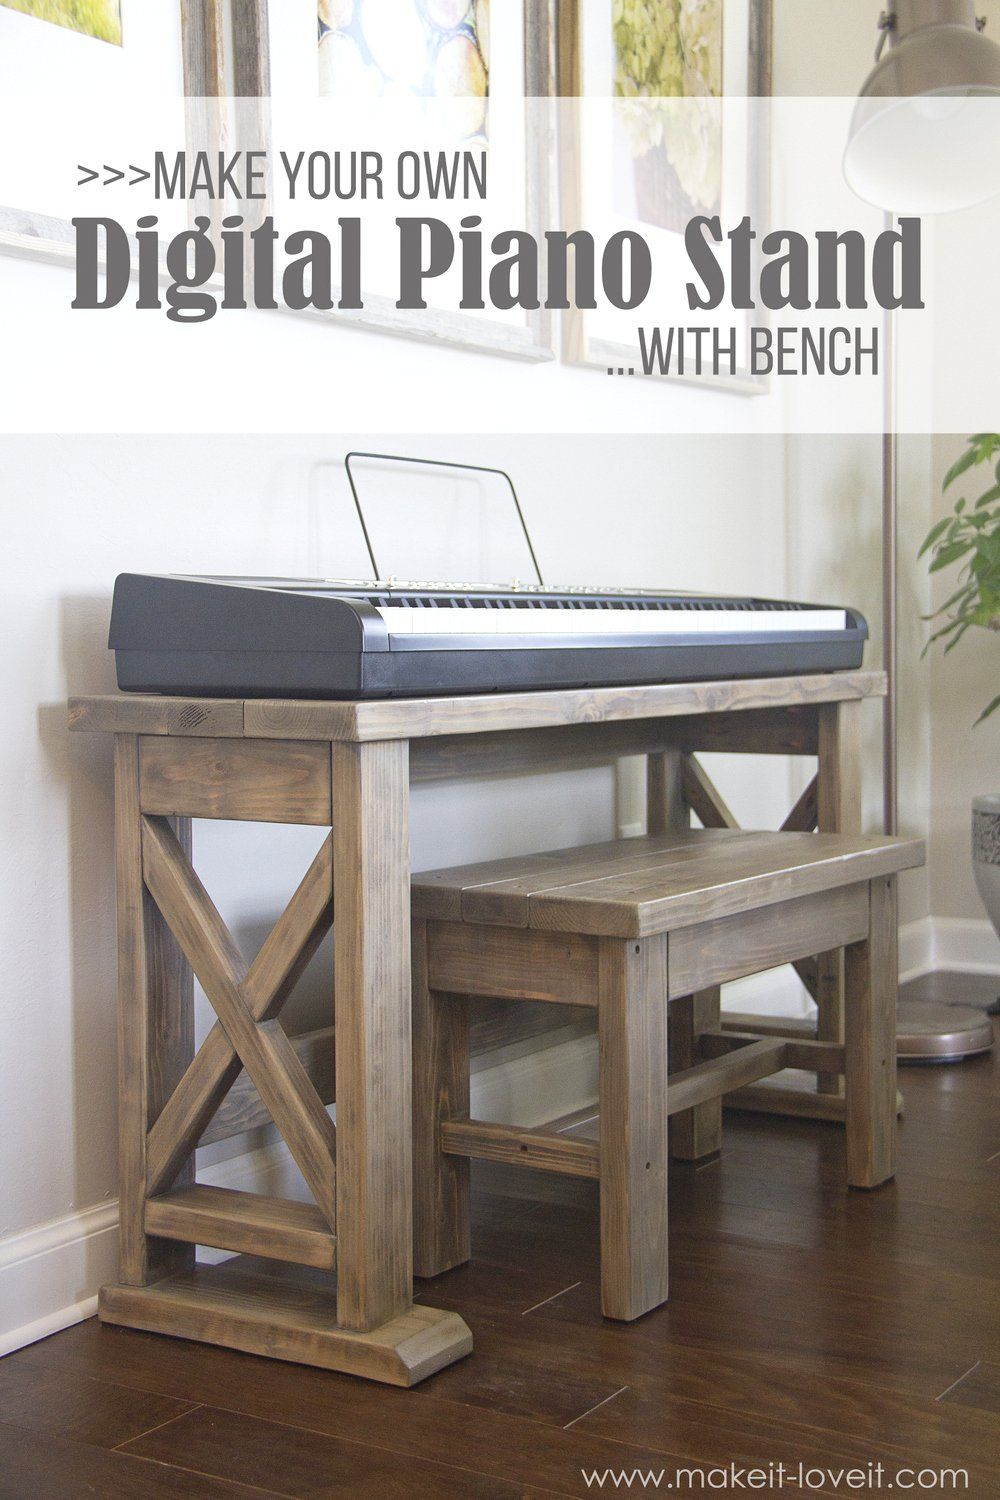 Diy Digital Piano Stand Plus Bench A 25 Project Furniture Plans Furniture Diy Home Diy